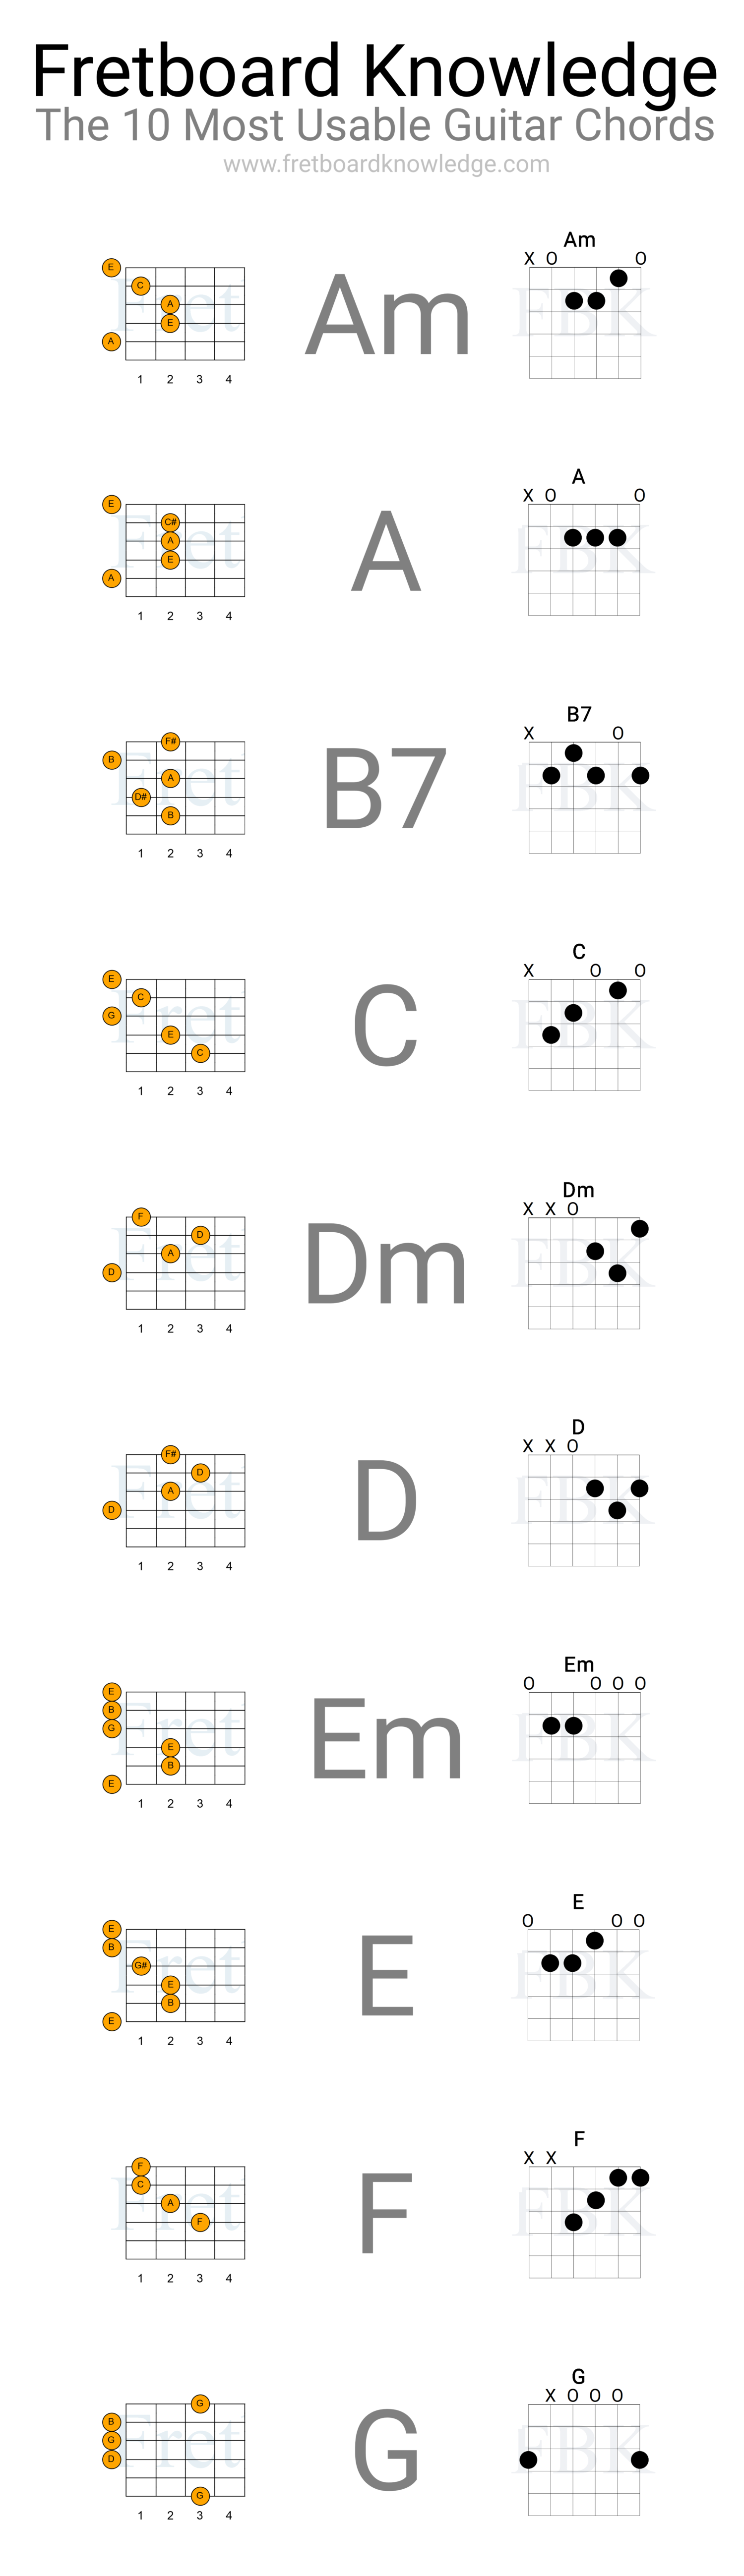 Fretboard Knowledge - The 10 Most Usable Guitar Chords - Tall View